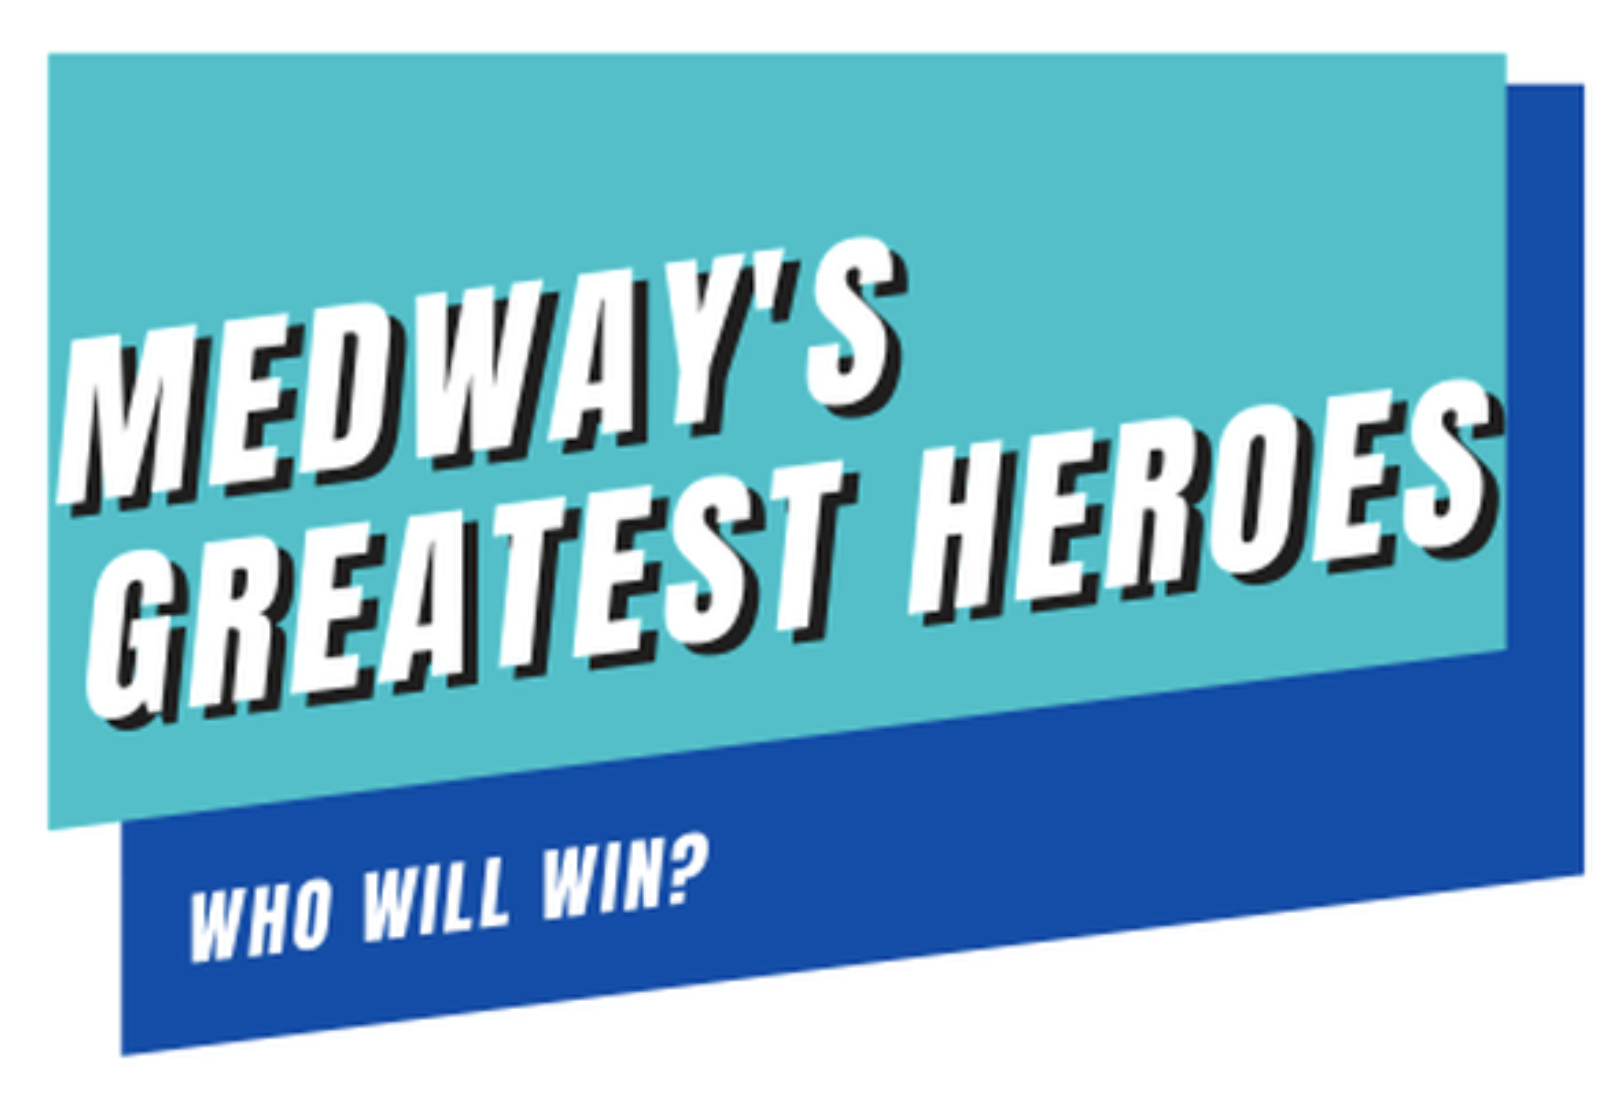 Medways Greatest Heroes